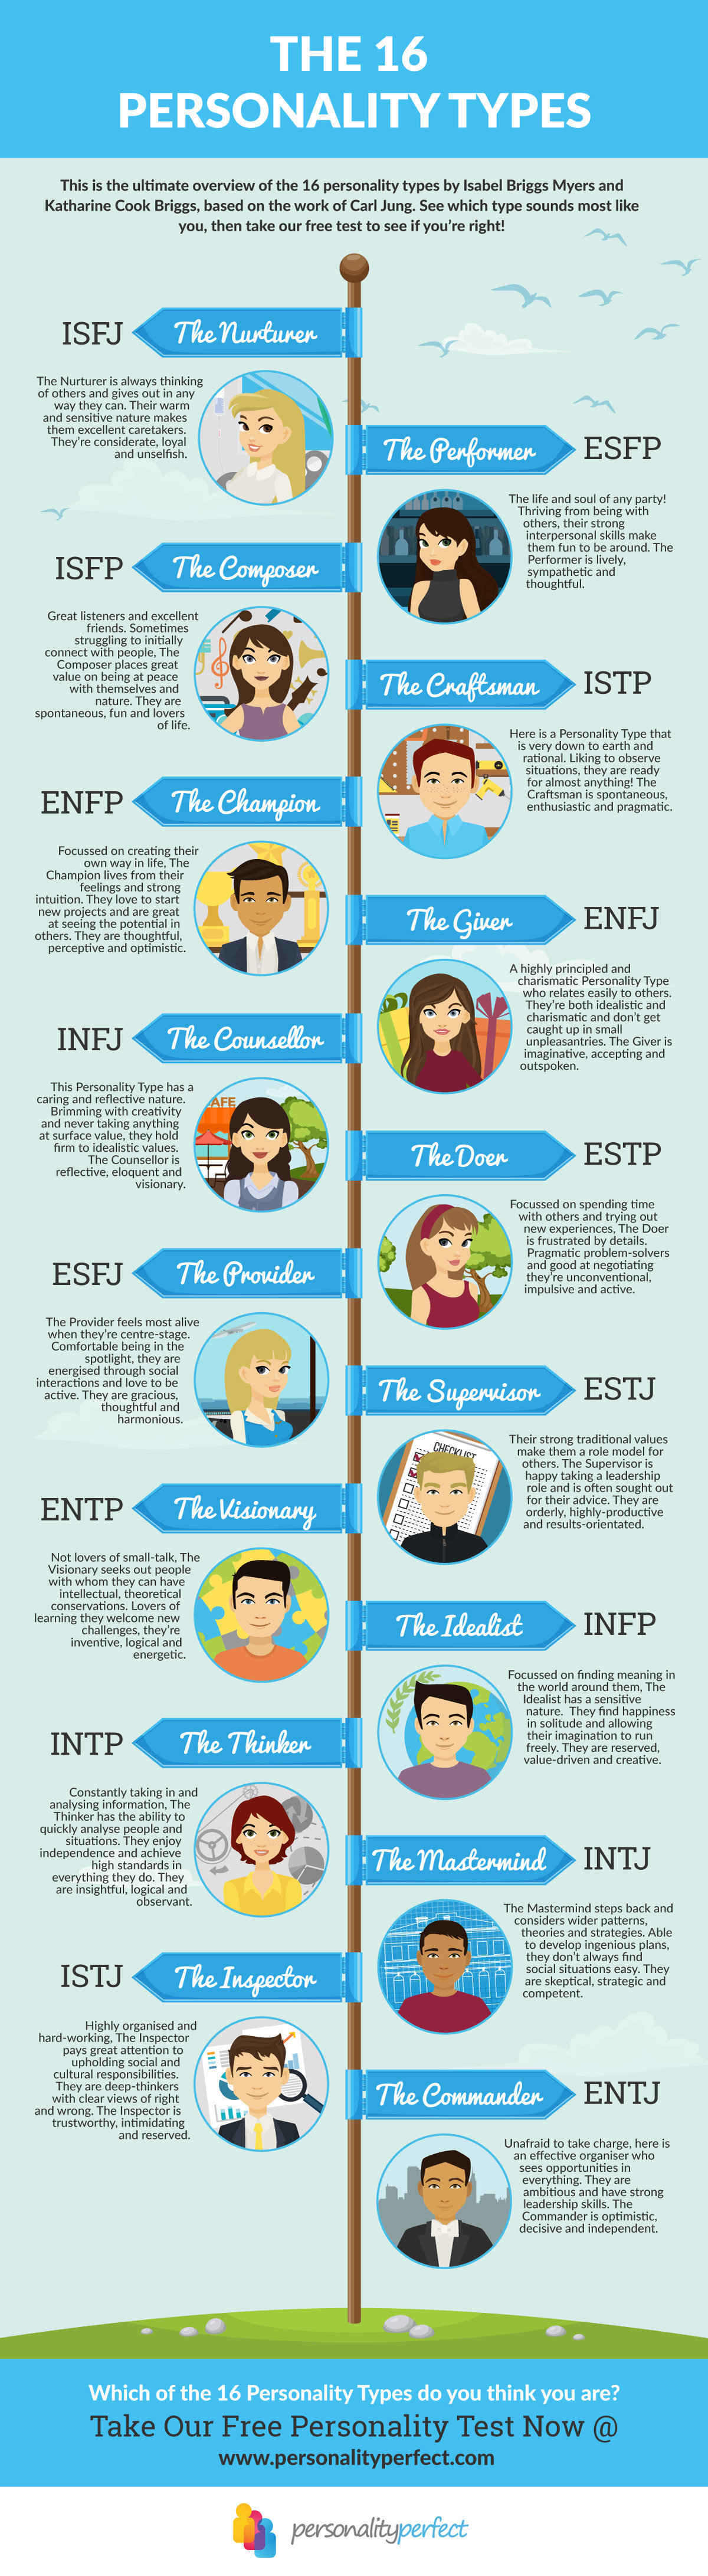 Myers Briggs 16 personality types overview, what's your type? Find out for free.